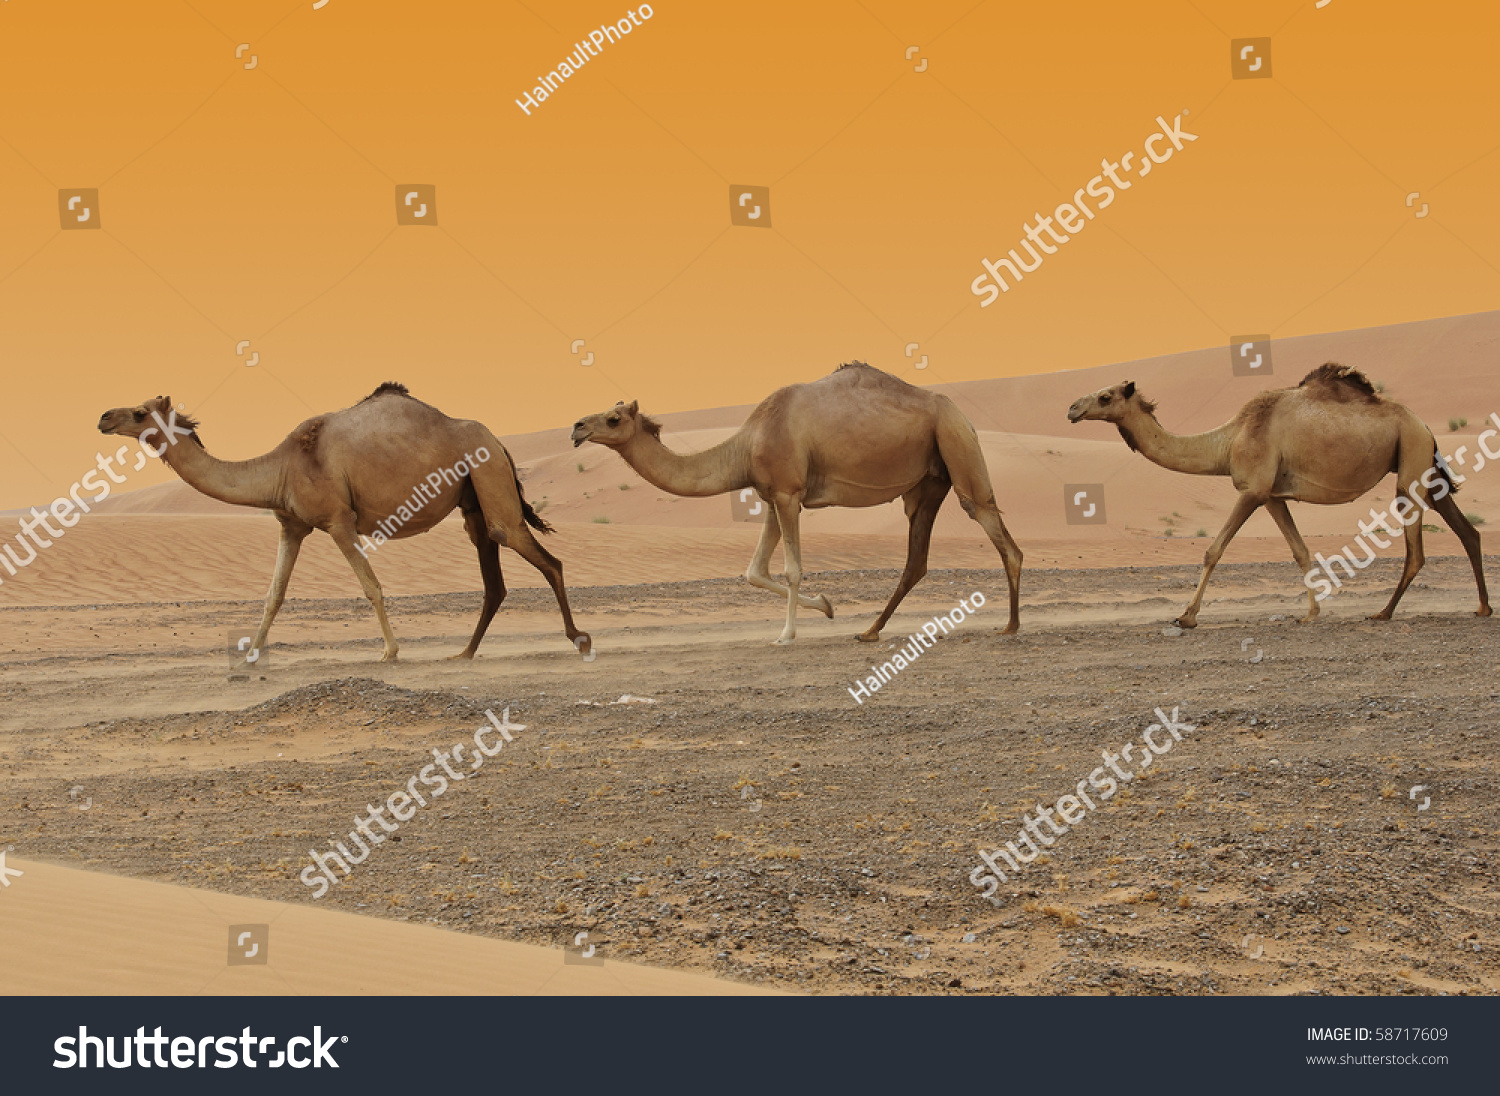 Three Camels In A Dubai Desert At Sunset Stock Photo ...